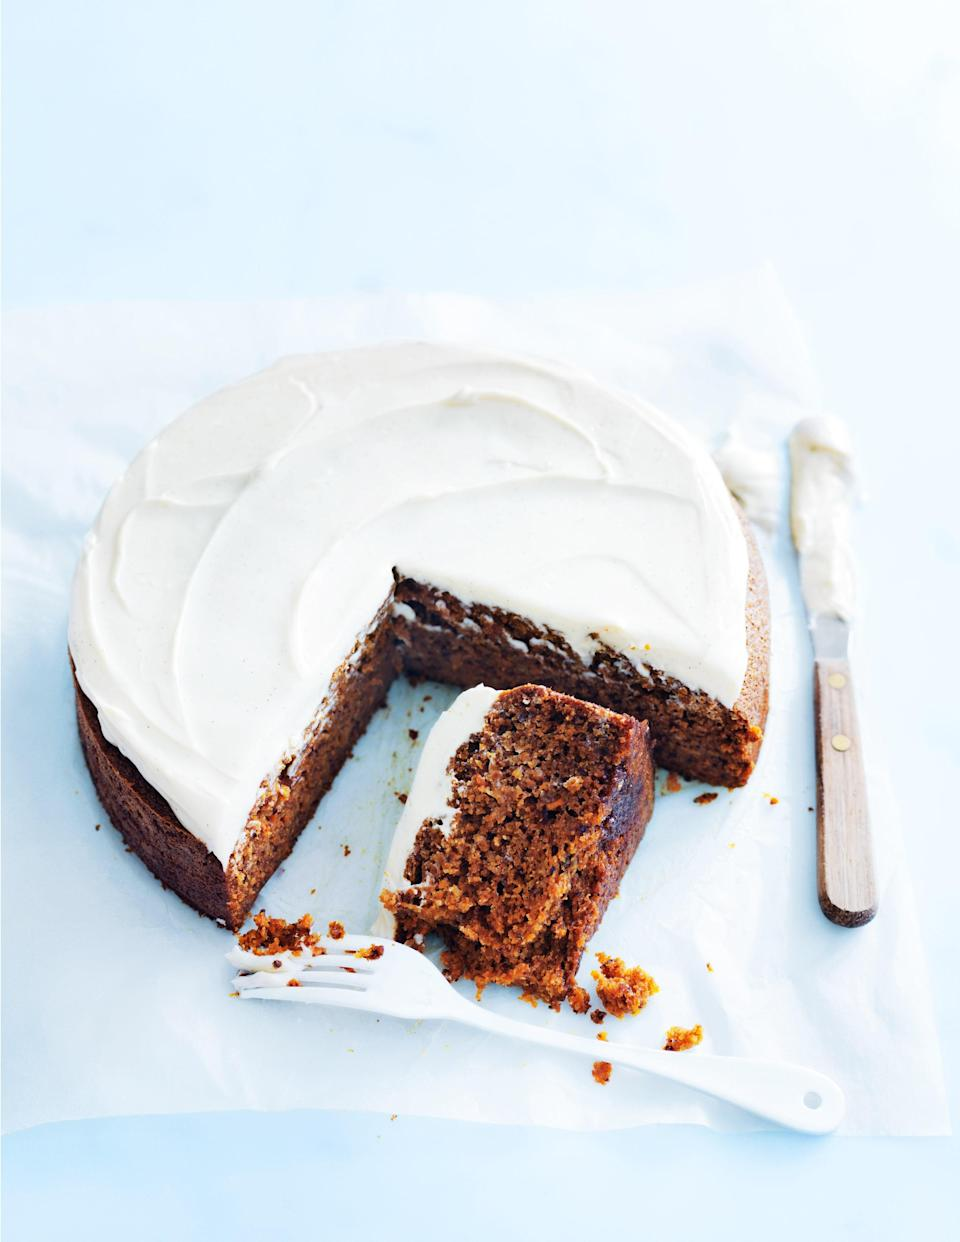 """You don't need a bowl or even beaters for this treat. Just mix all the ingredients in your food processor, then bake. Lightened with a little bit of ricotta cheese, the cream cheese frosting here is one for the ages. <a href=""""https://www.epicurious.com/recipes/food/views/food-processor-carrot-cake-56390081?mbid=synd_yahoo_rss"""" rel=""""nofollow noopener"""" target=""""_blank"""" data-ylk=""""slk:See recipe."""" class=""""link rapid-noclick-resp"""">See recipe.</a>"""